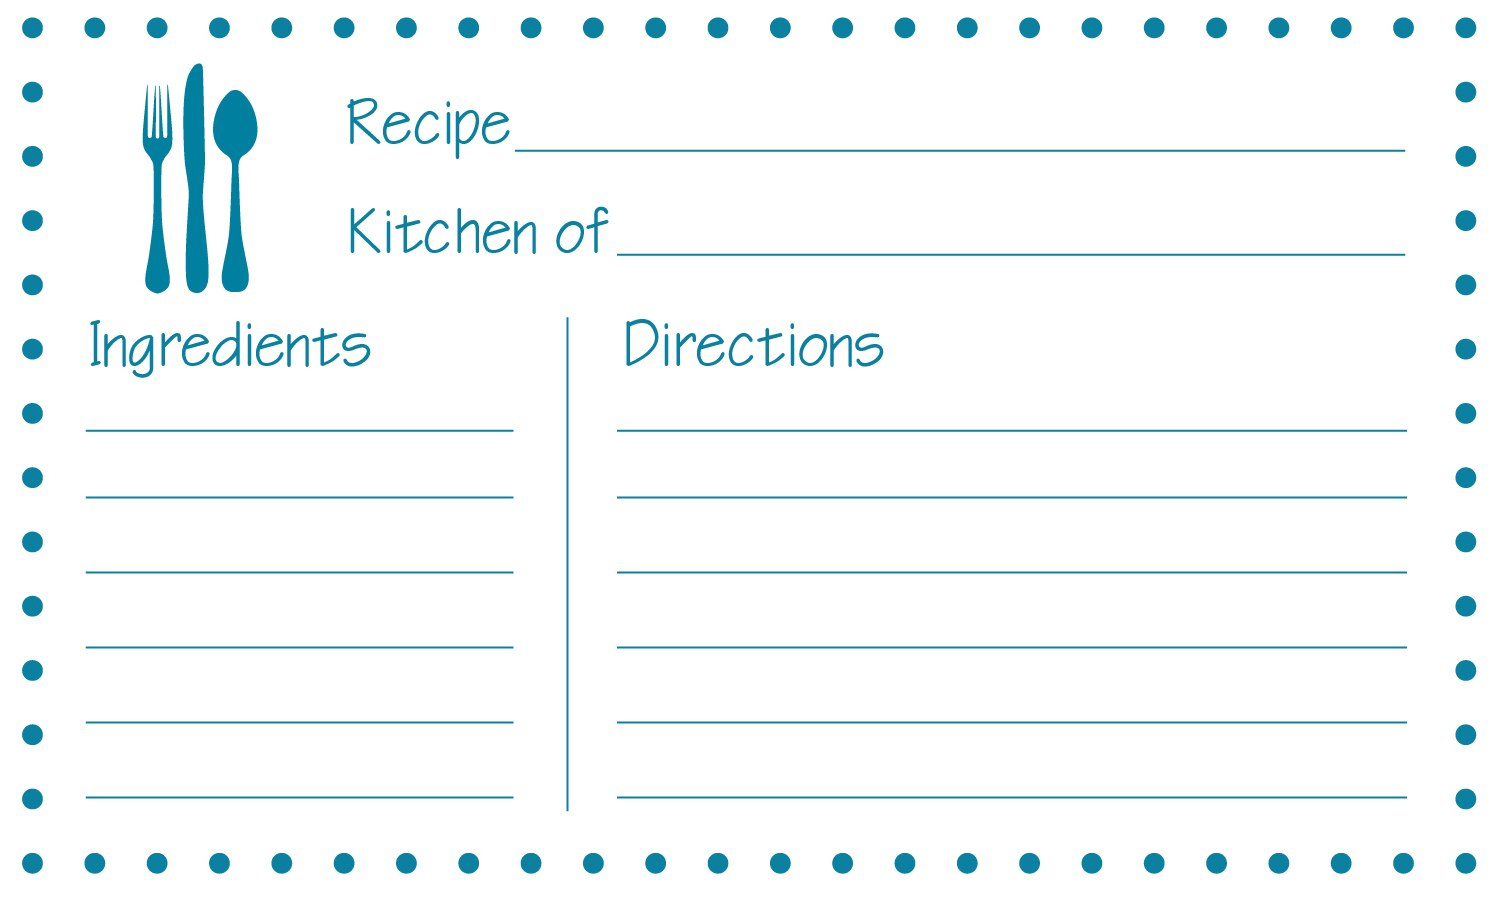 Free Recipe Card Templates To Type On And Print Cards Guvecurid Inside 4X6 Photo Card Template Free